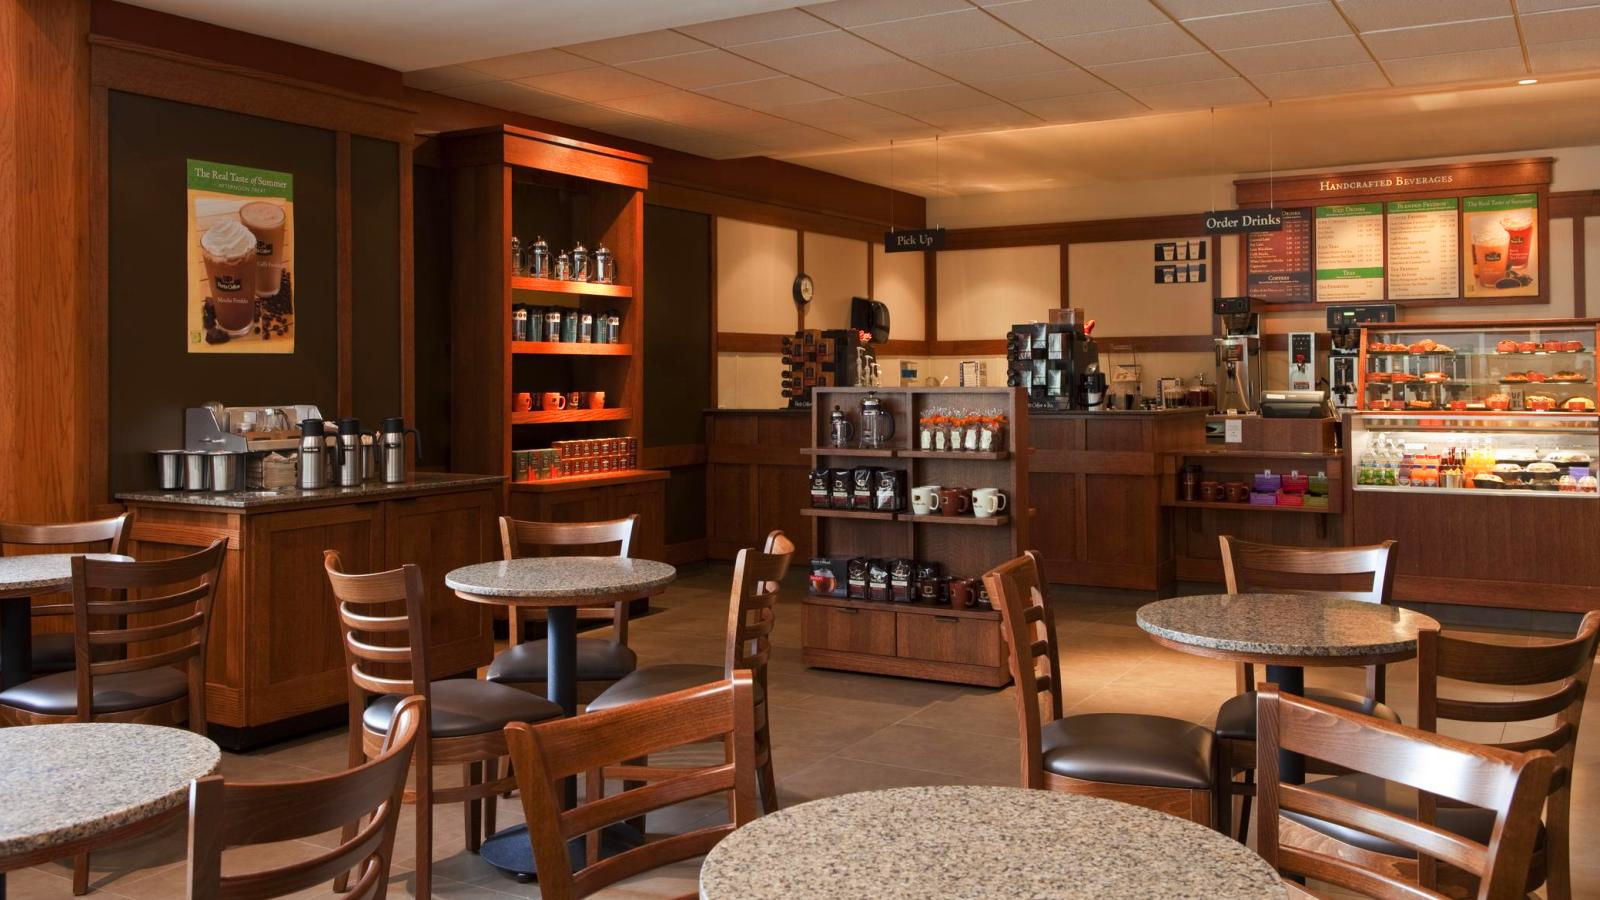 Sheraton Dallas Hotel - Peet's Coffee & Tea